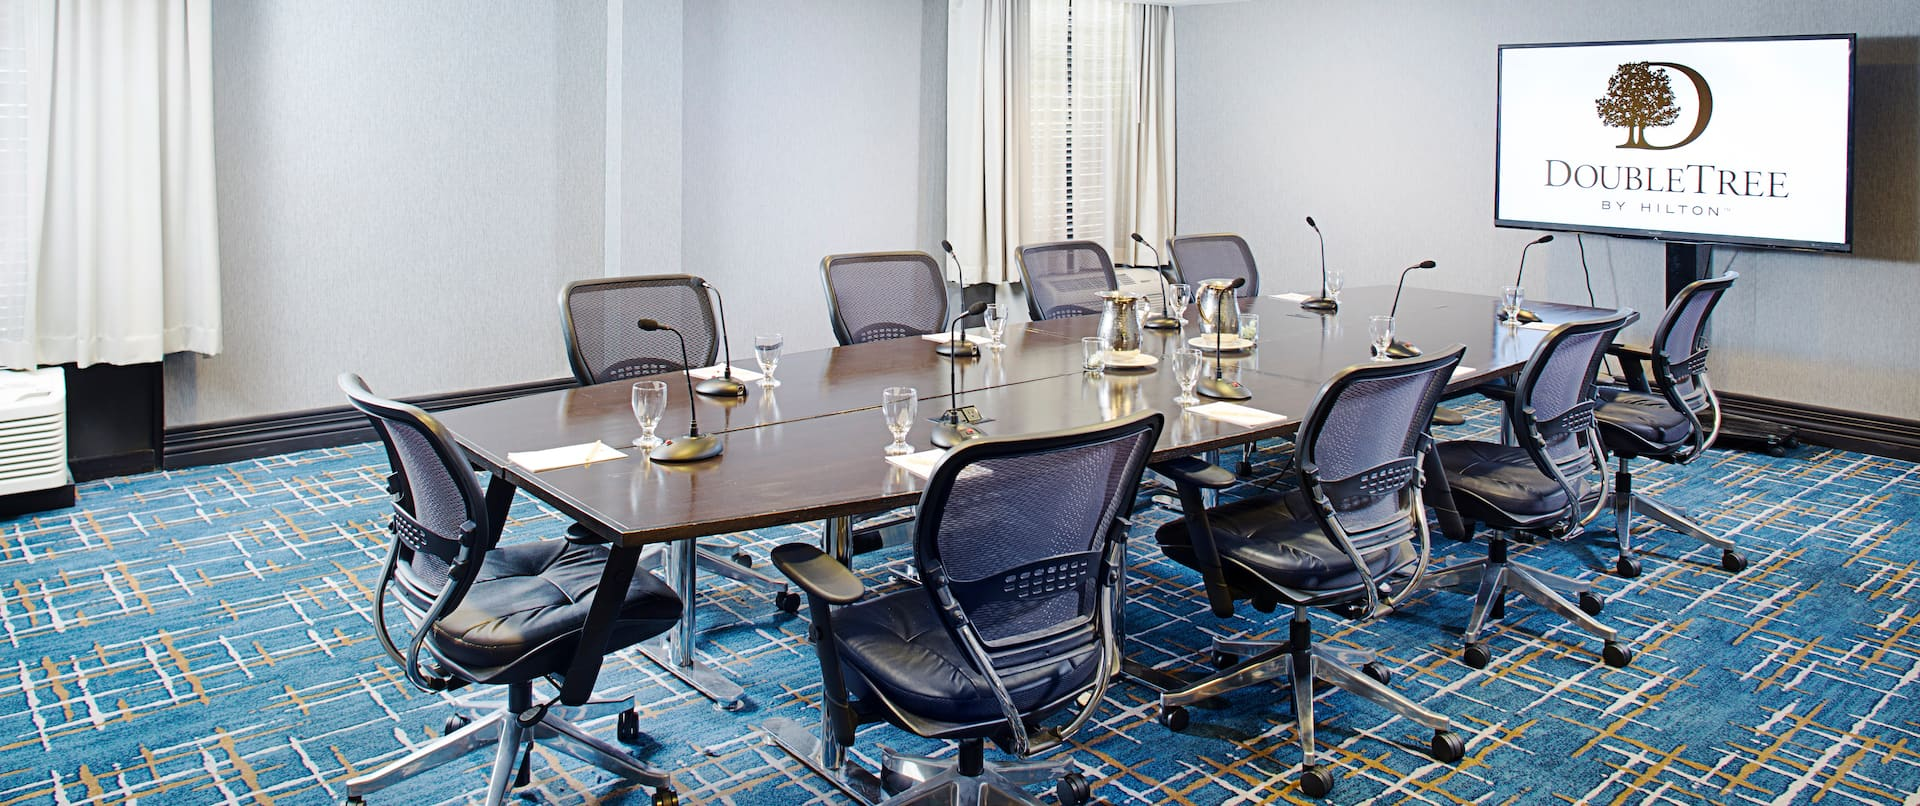 Wall Art, Seating for Nine at Table With Microphones, Water Pitchers, and Glasses Facing TV in Executive Ballroom